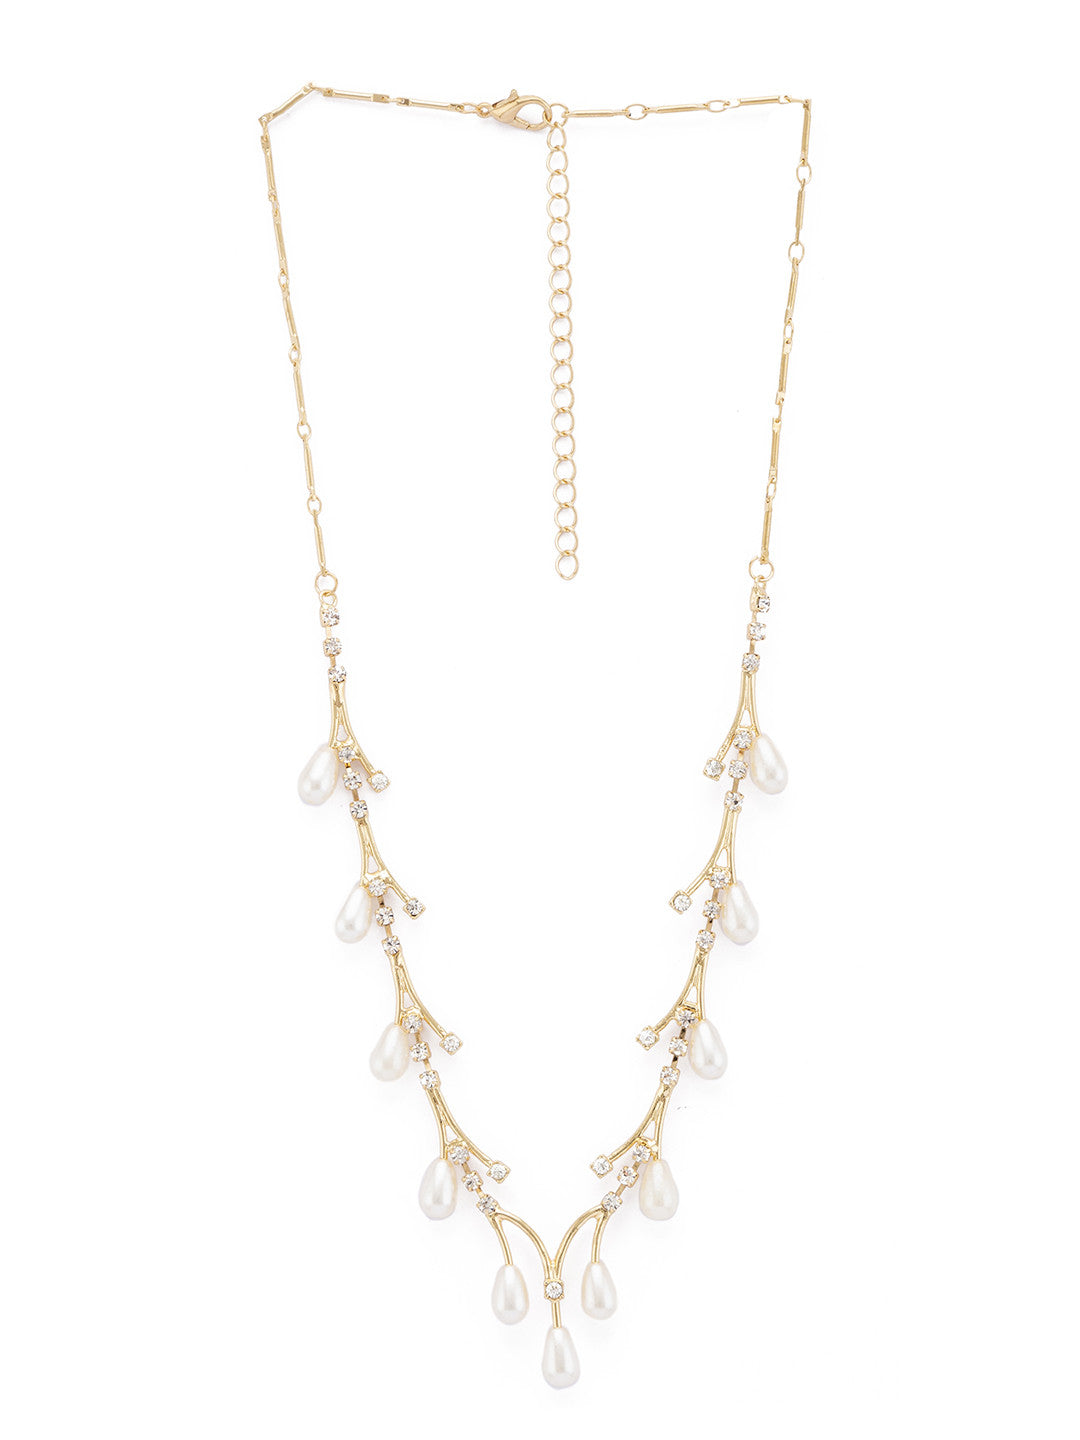 Gold & White Stones and Beads Necklace-1